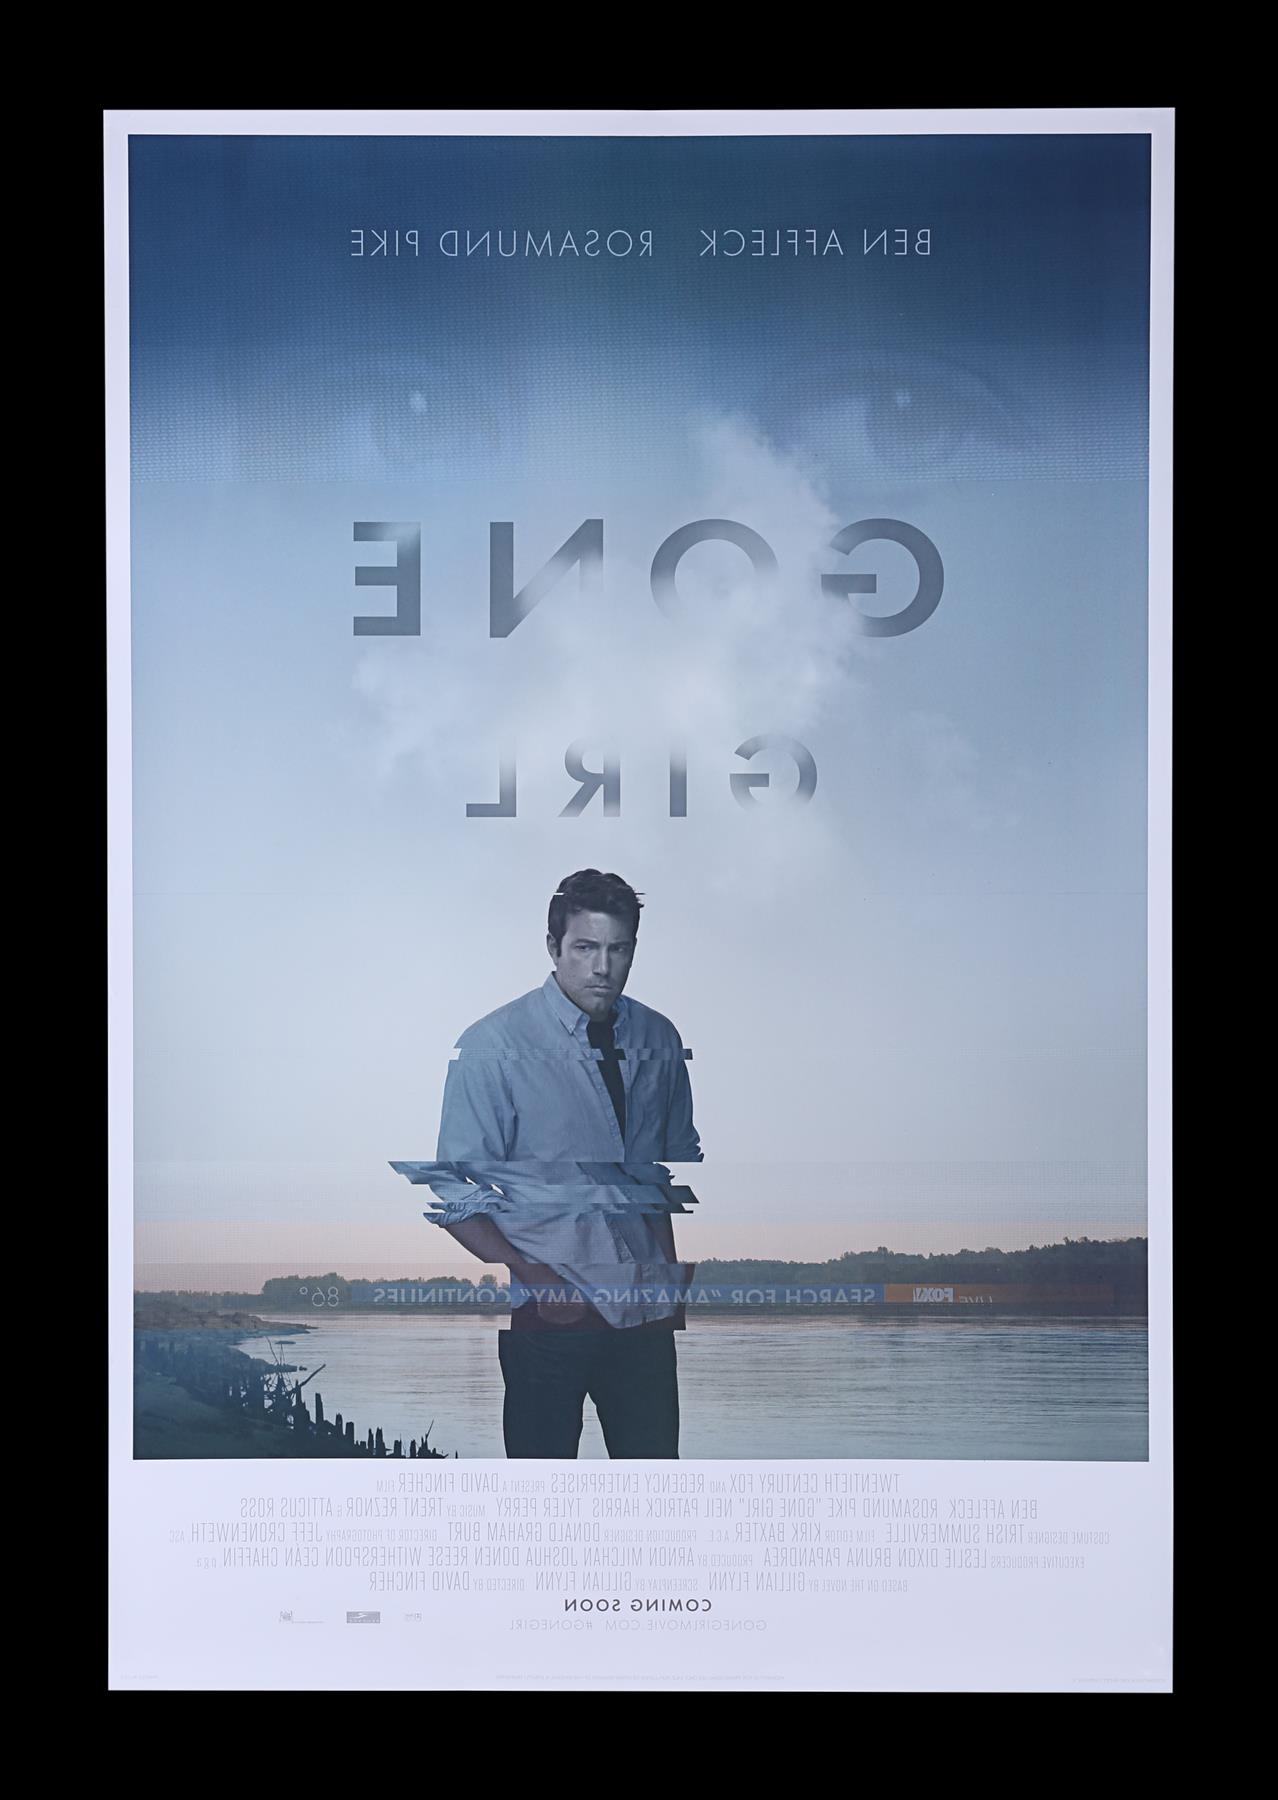 GONE GIRL (2014) - Poster Autographed by David Fincher and Rosamund Pike - Image 7 of 7